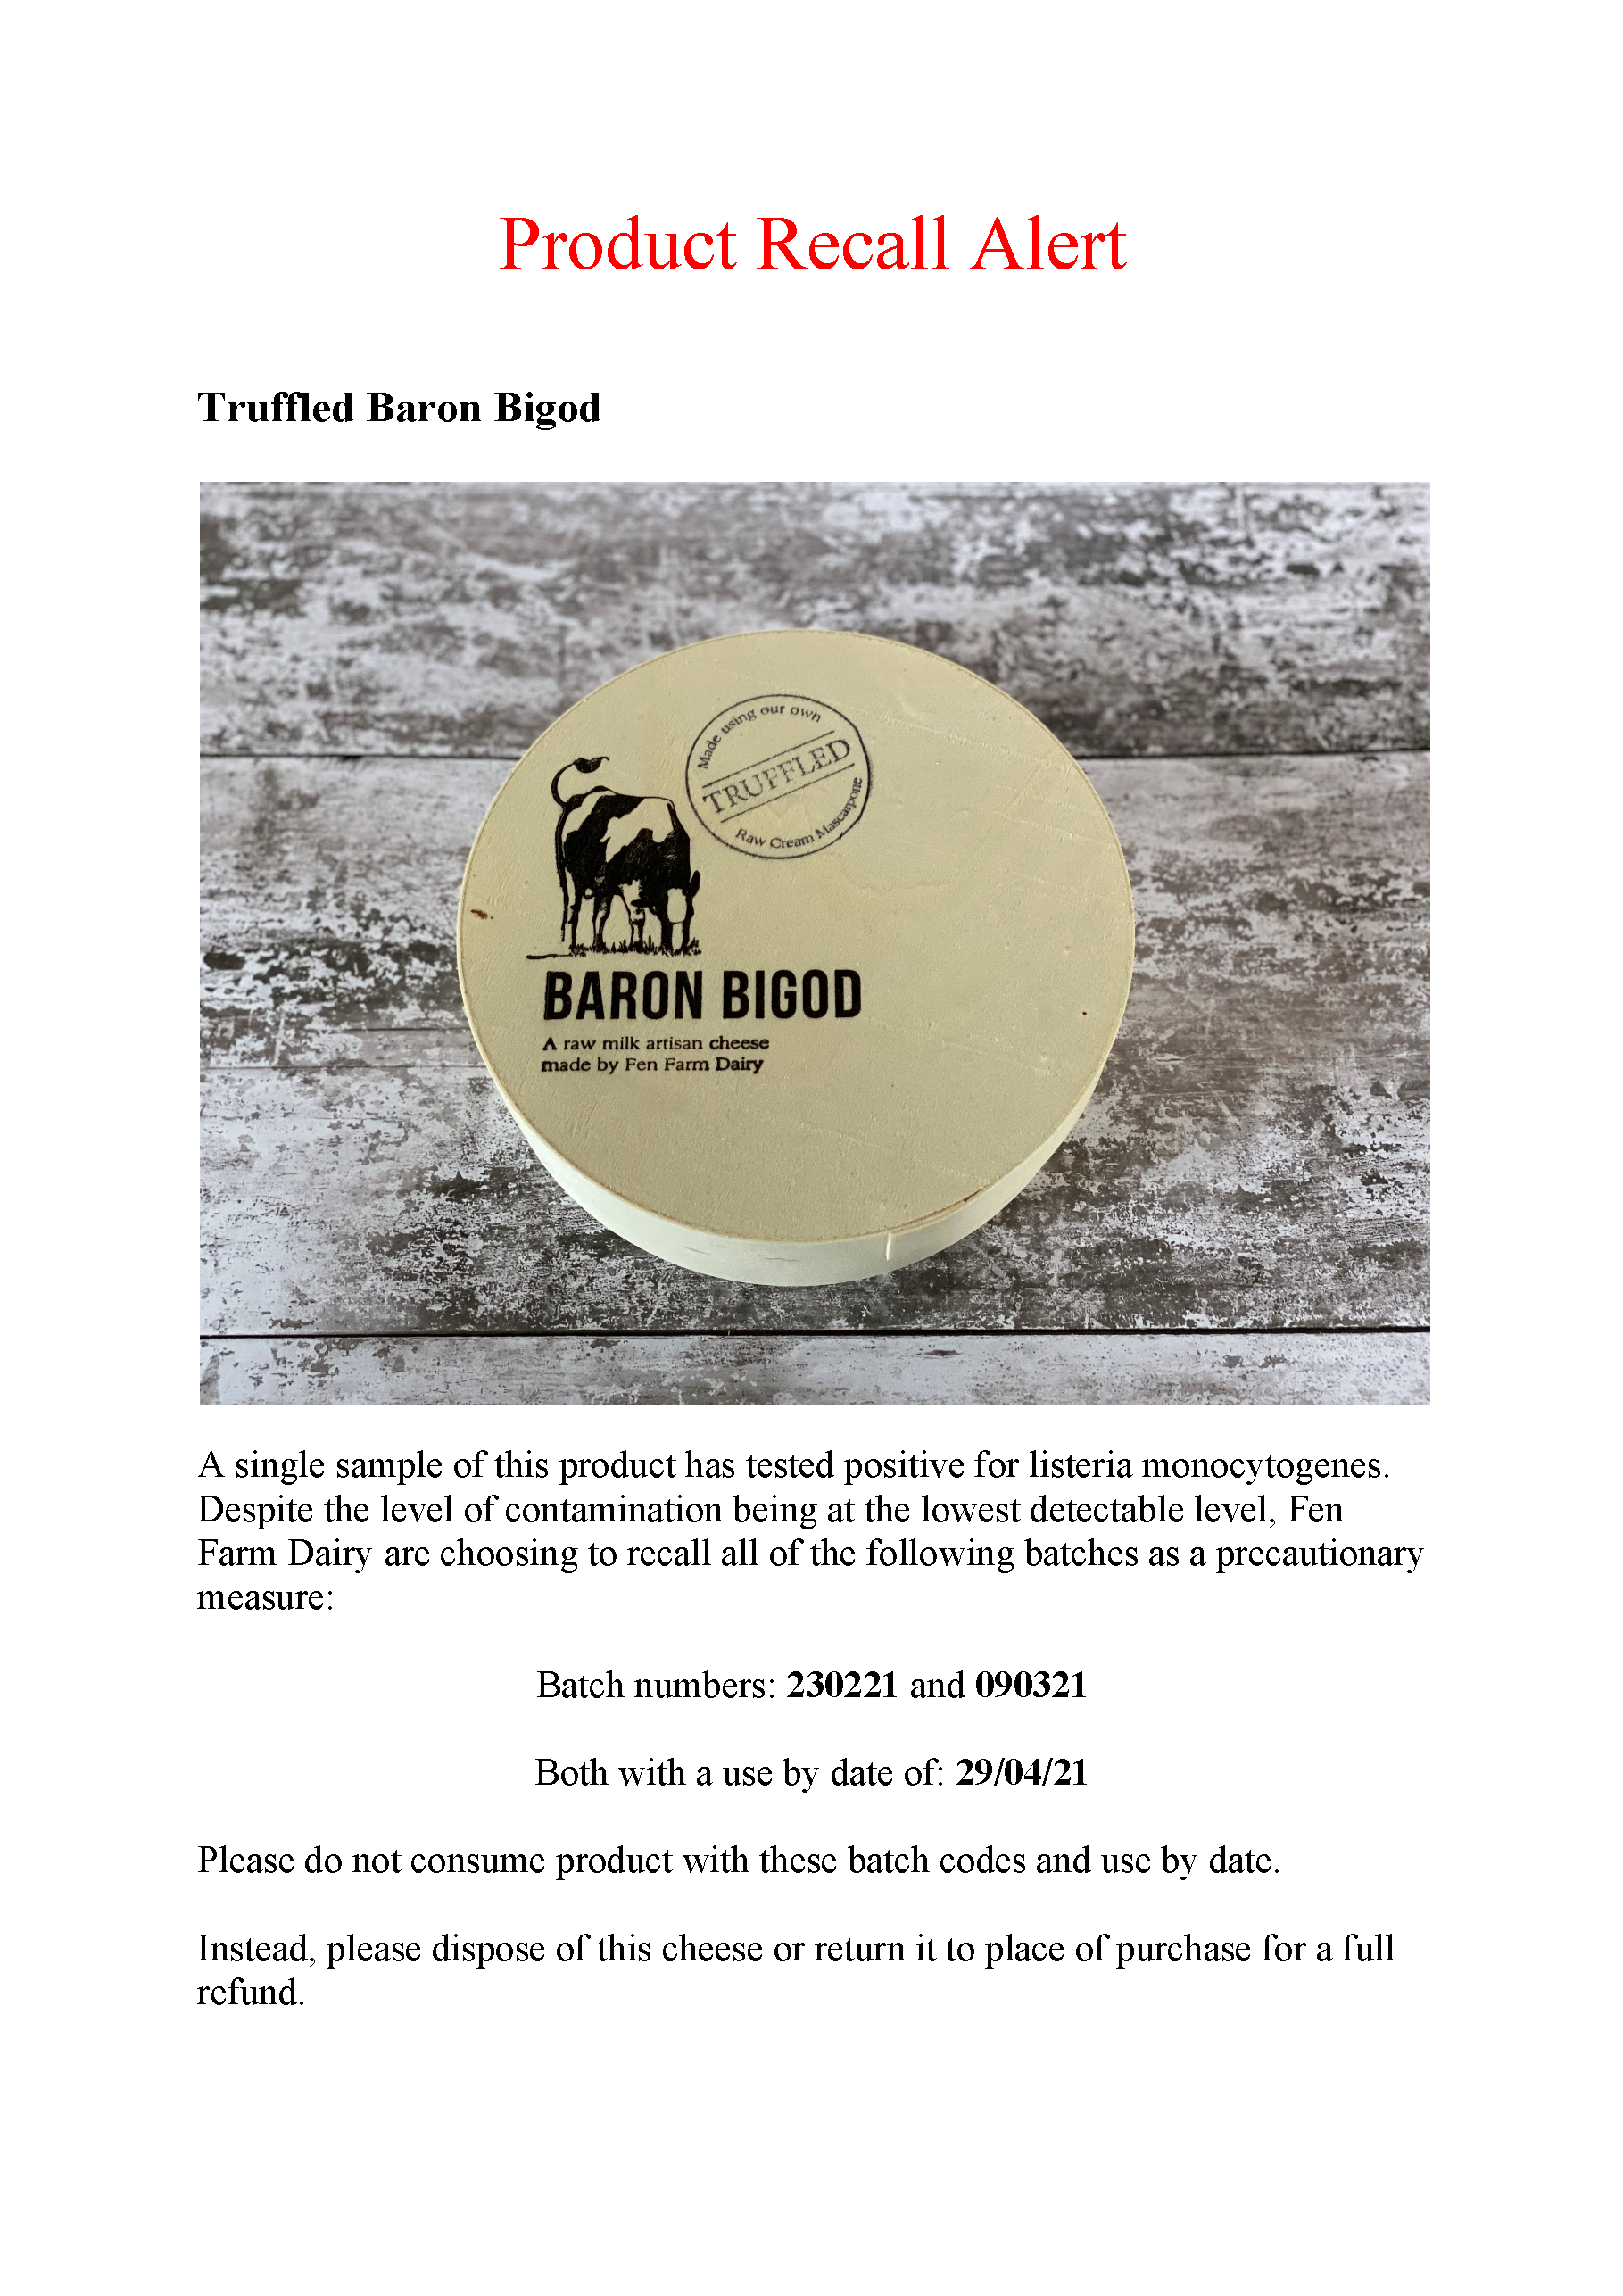 product recall on truffle baron